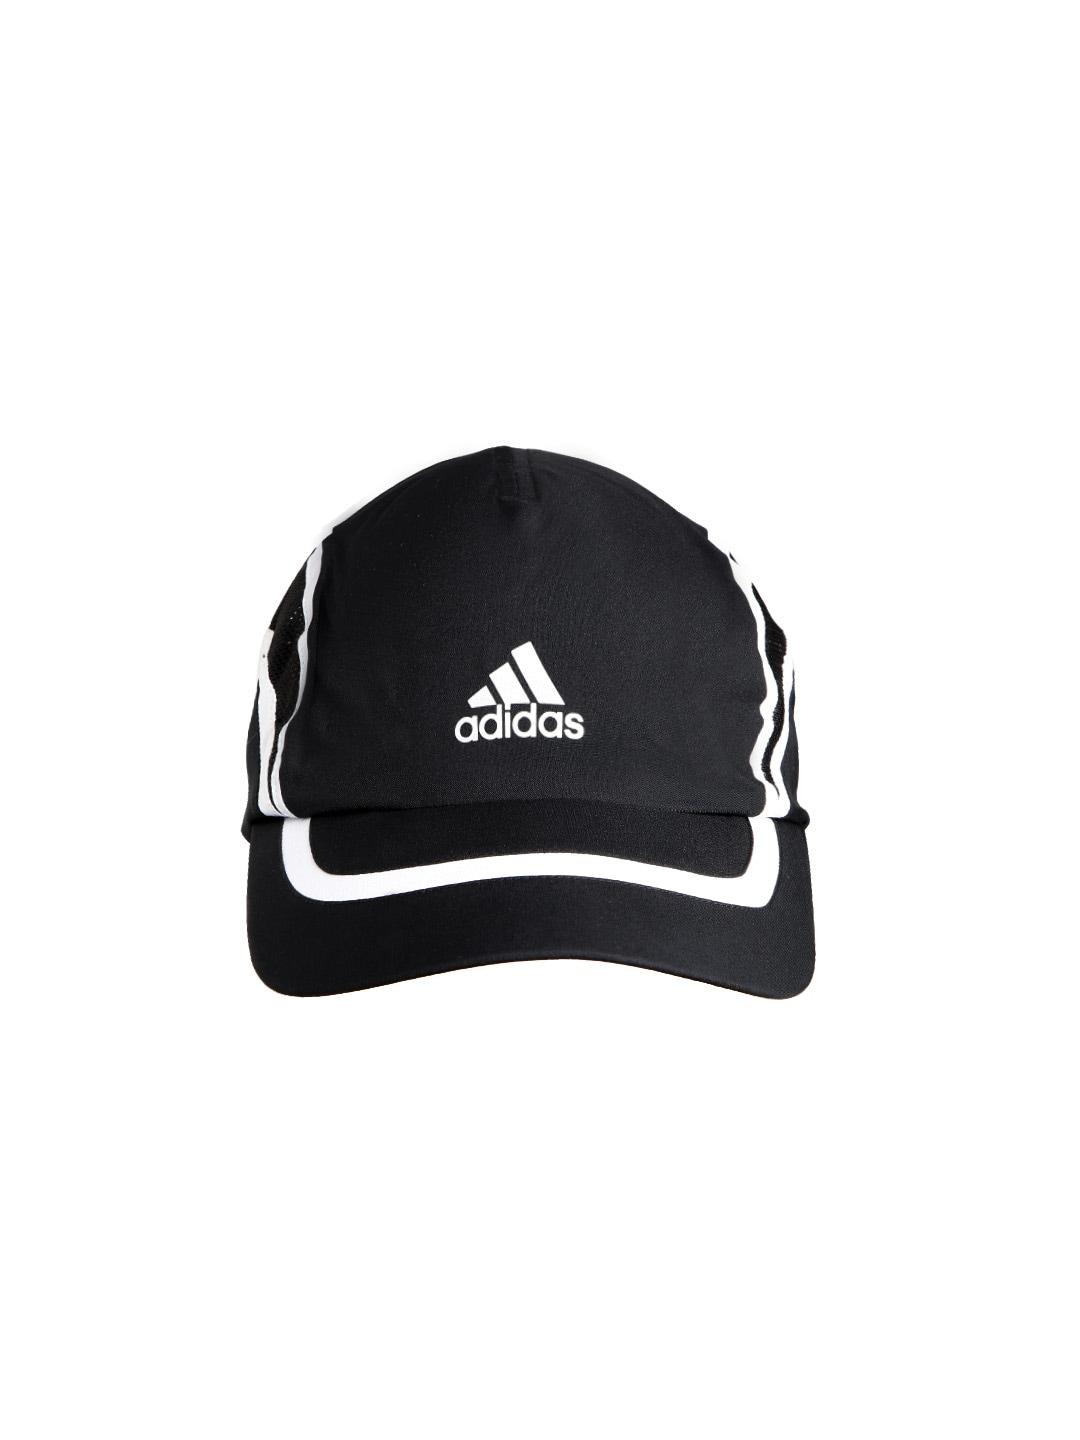 Adidas f78709 Unisex Black Cap - Best Price in India  5f5207b09b9a